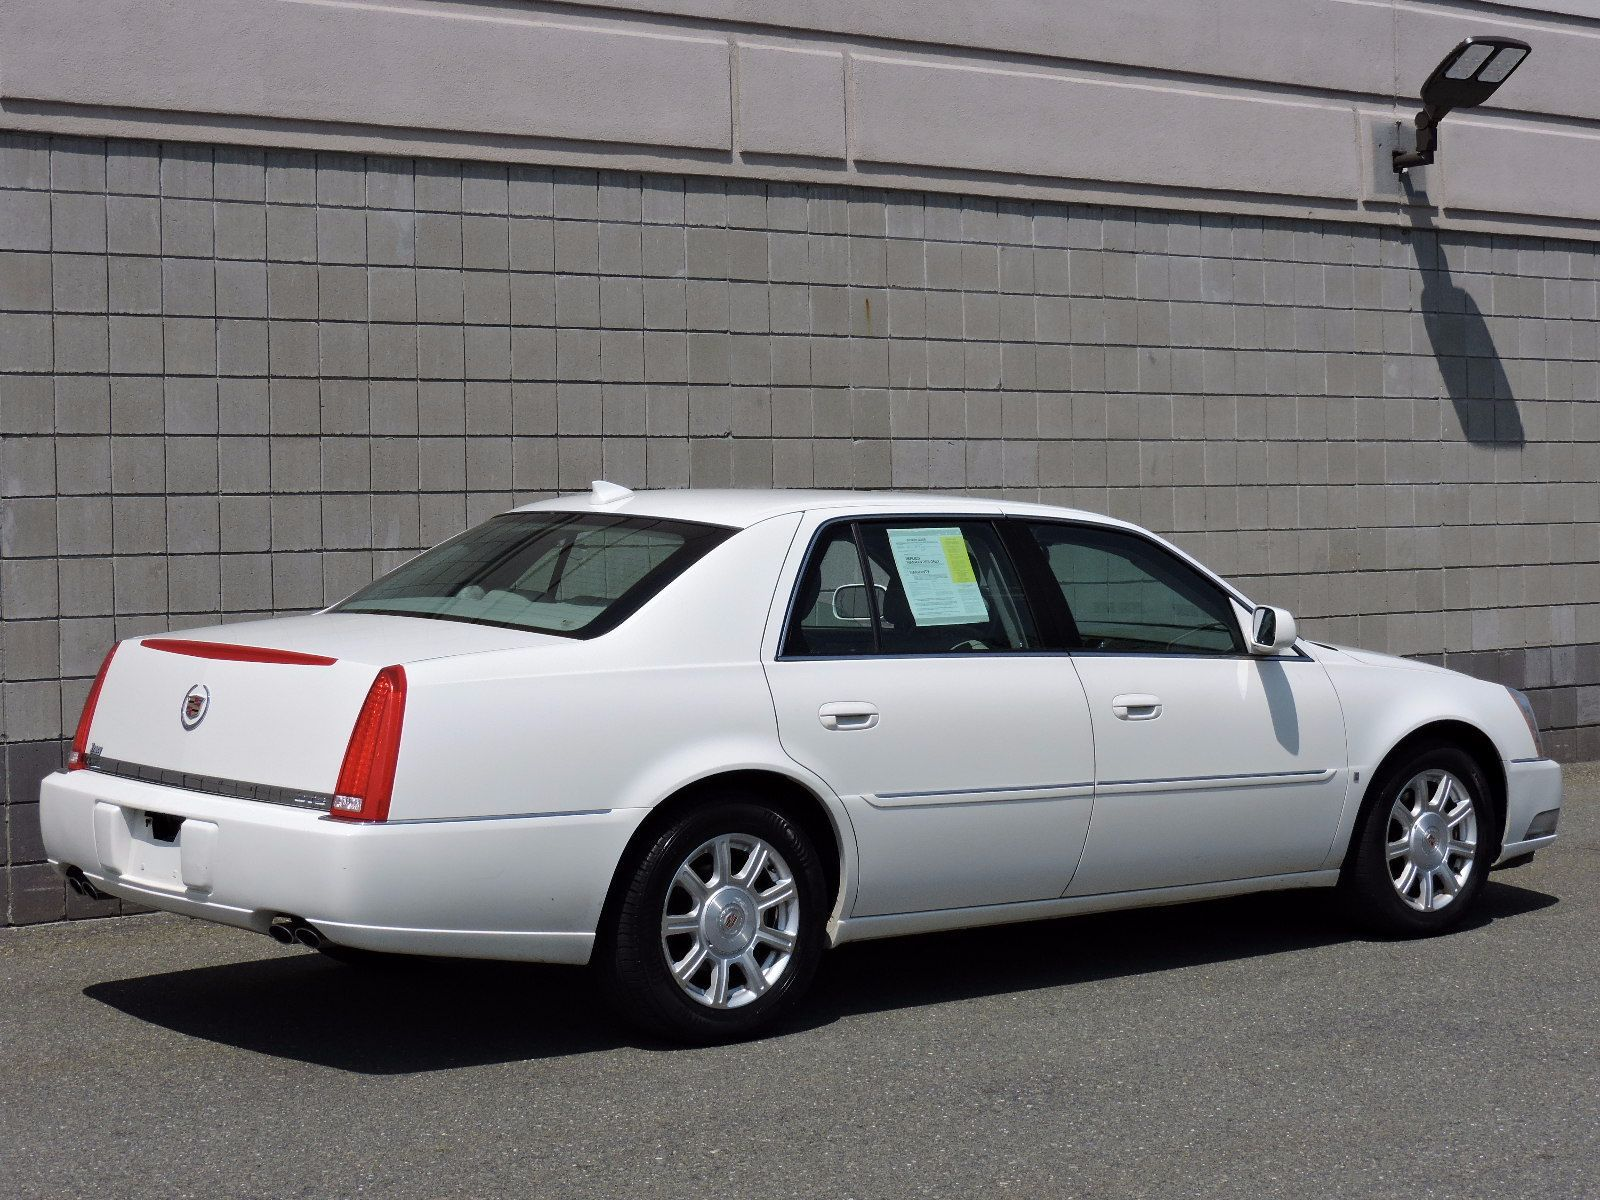 wiki file commons wikimedia caddy hearse cadillac dts